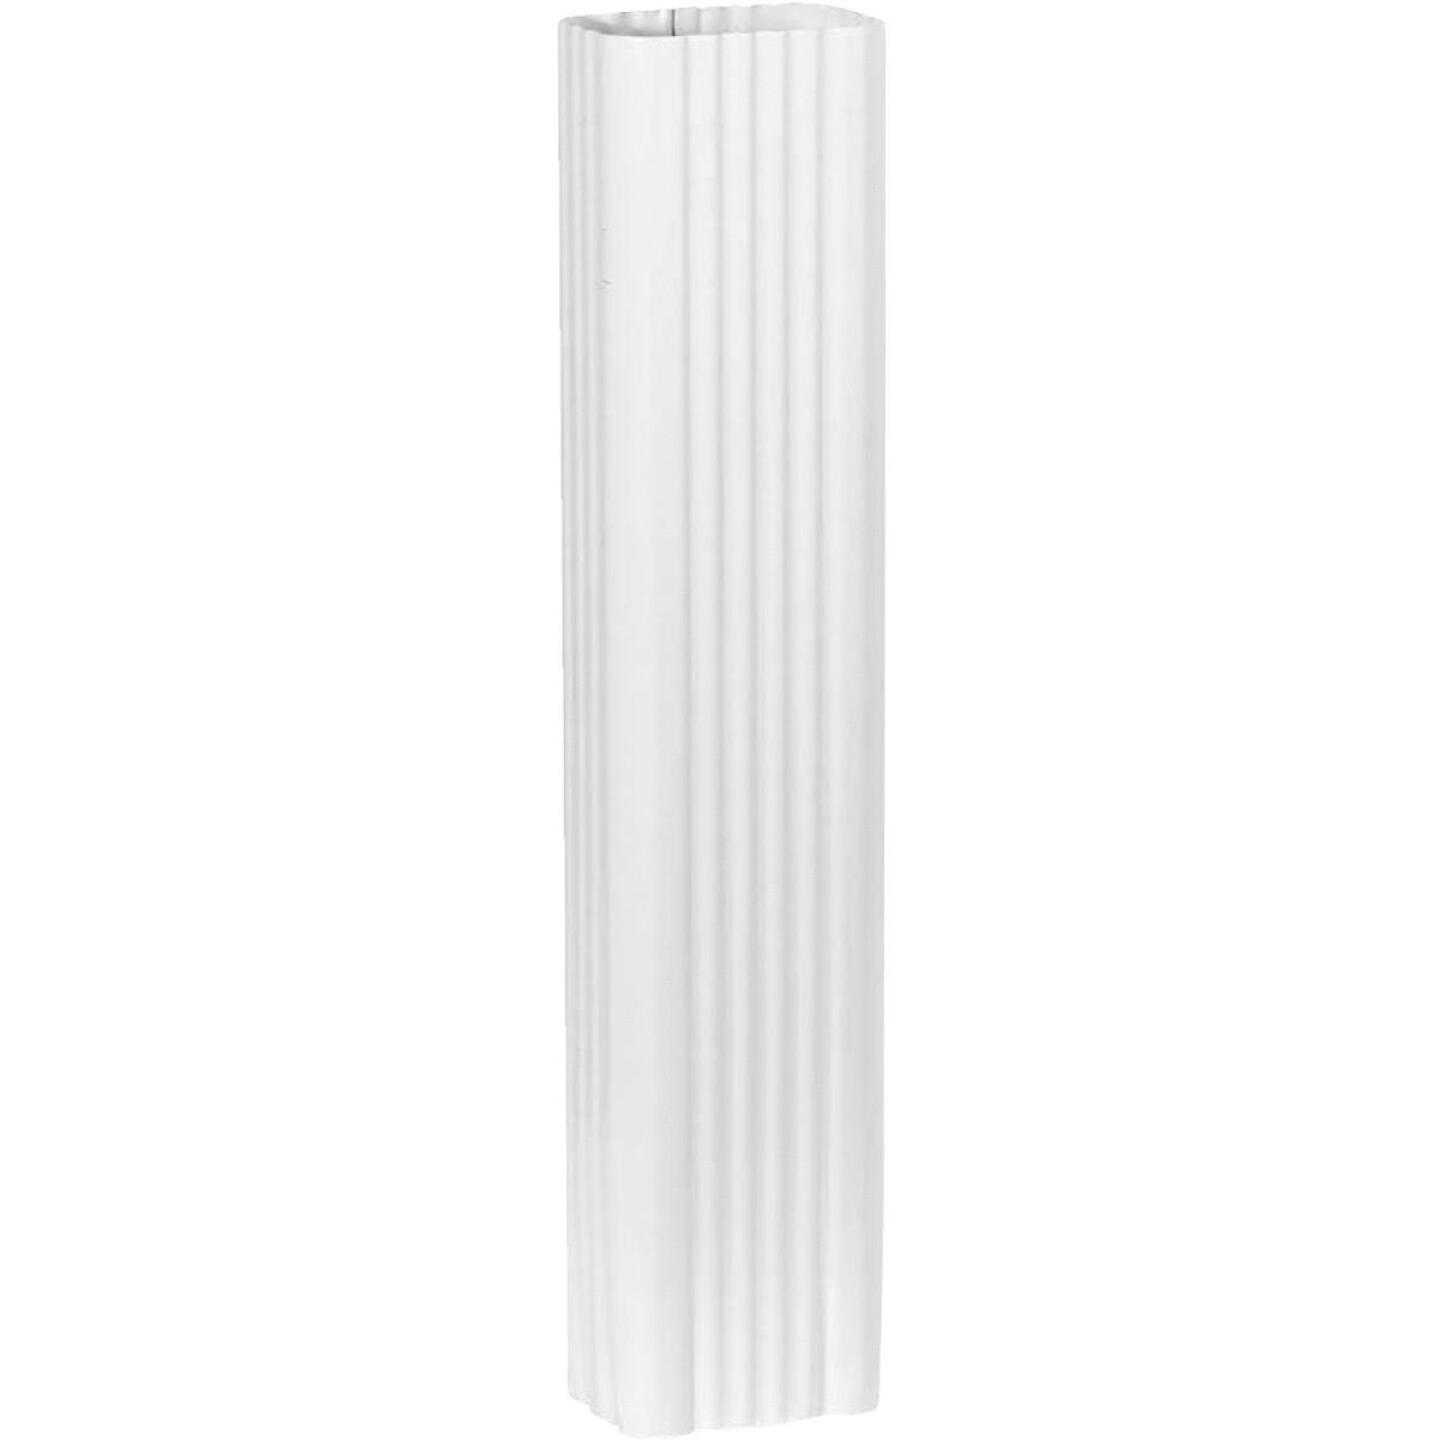 Spectra Metals 3 In. x 4 In. x 15 In. K-Style White Aluminum Downspout Extension Image 1